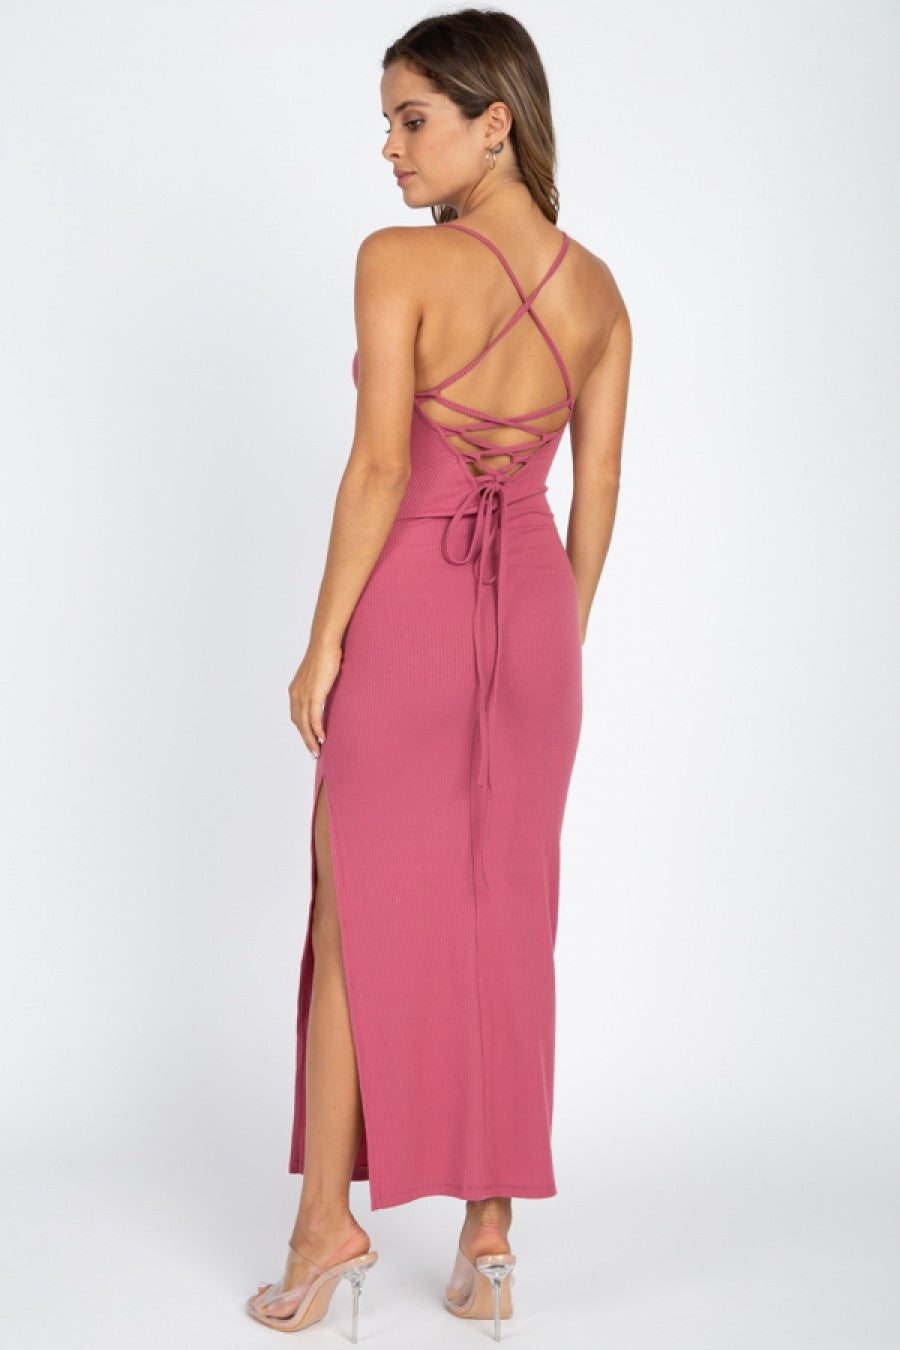 Soon As I Get Home Dress - Mauve